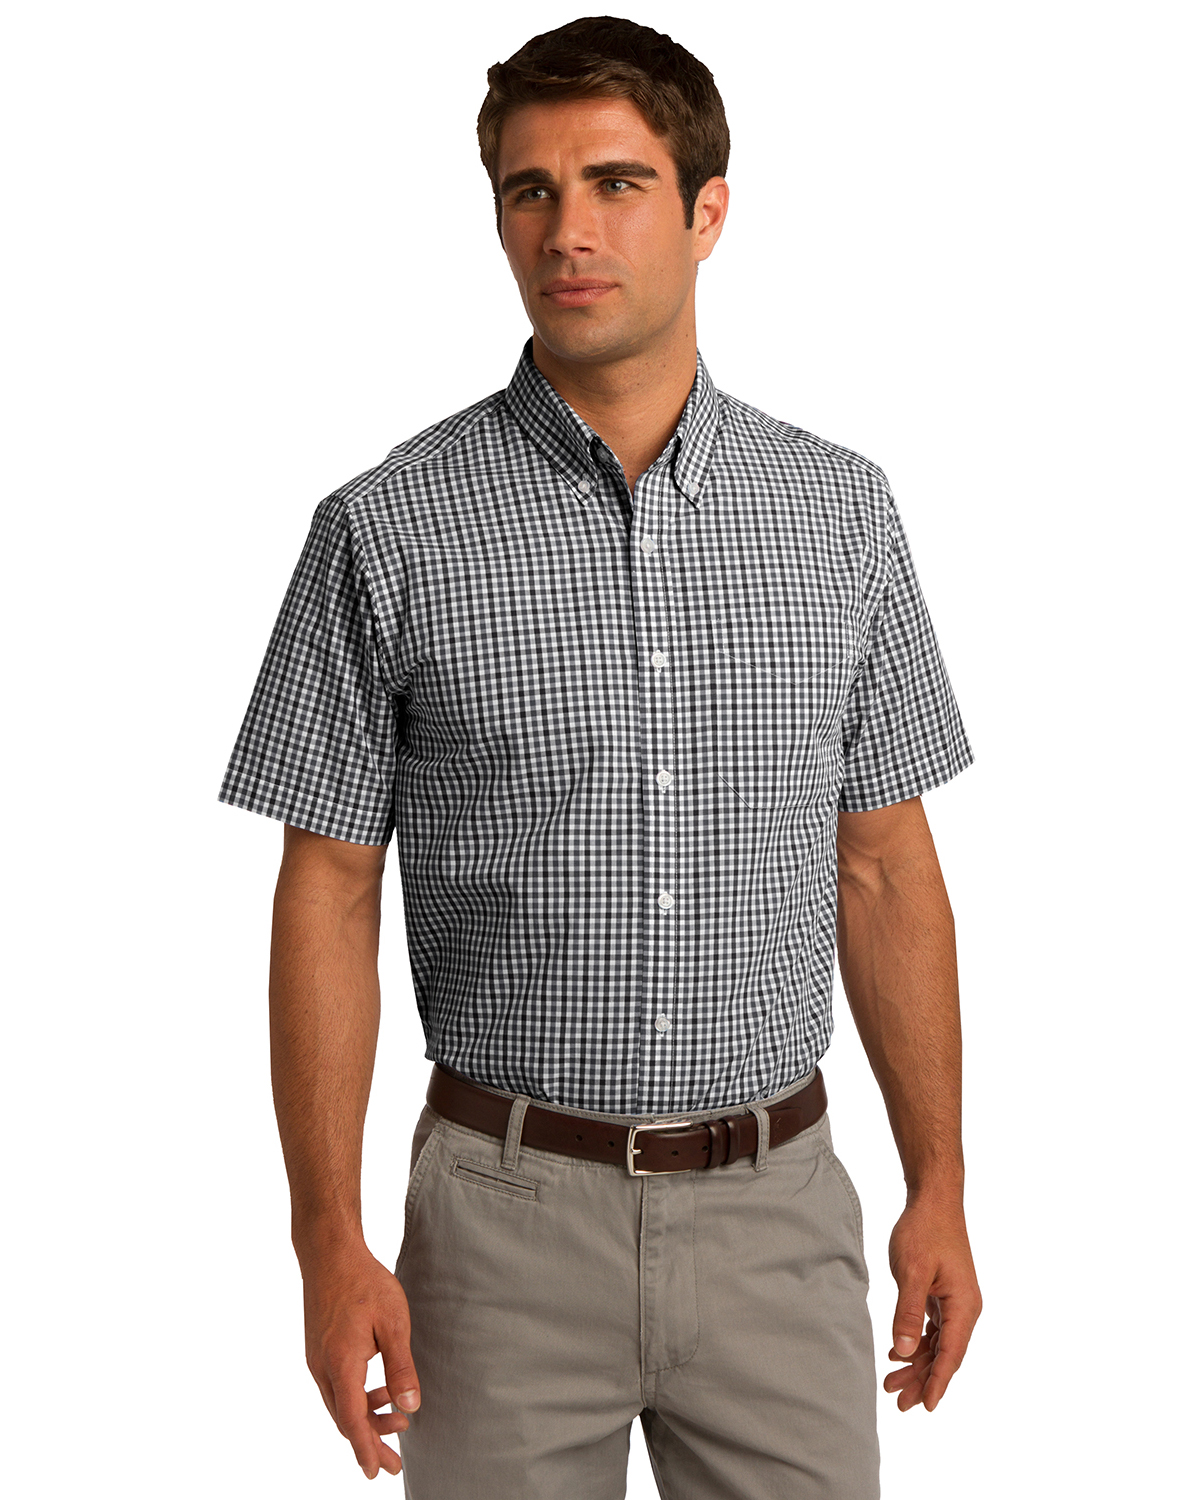 Port Authority S655 Men Short Sleeve Gingham Easy Care Shirt at GotApparel